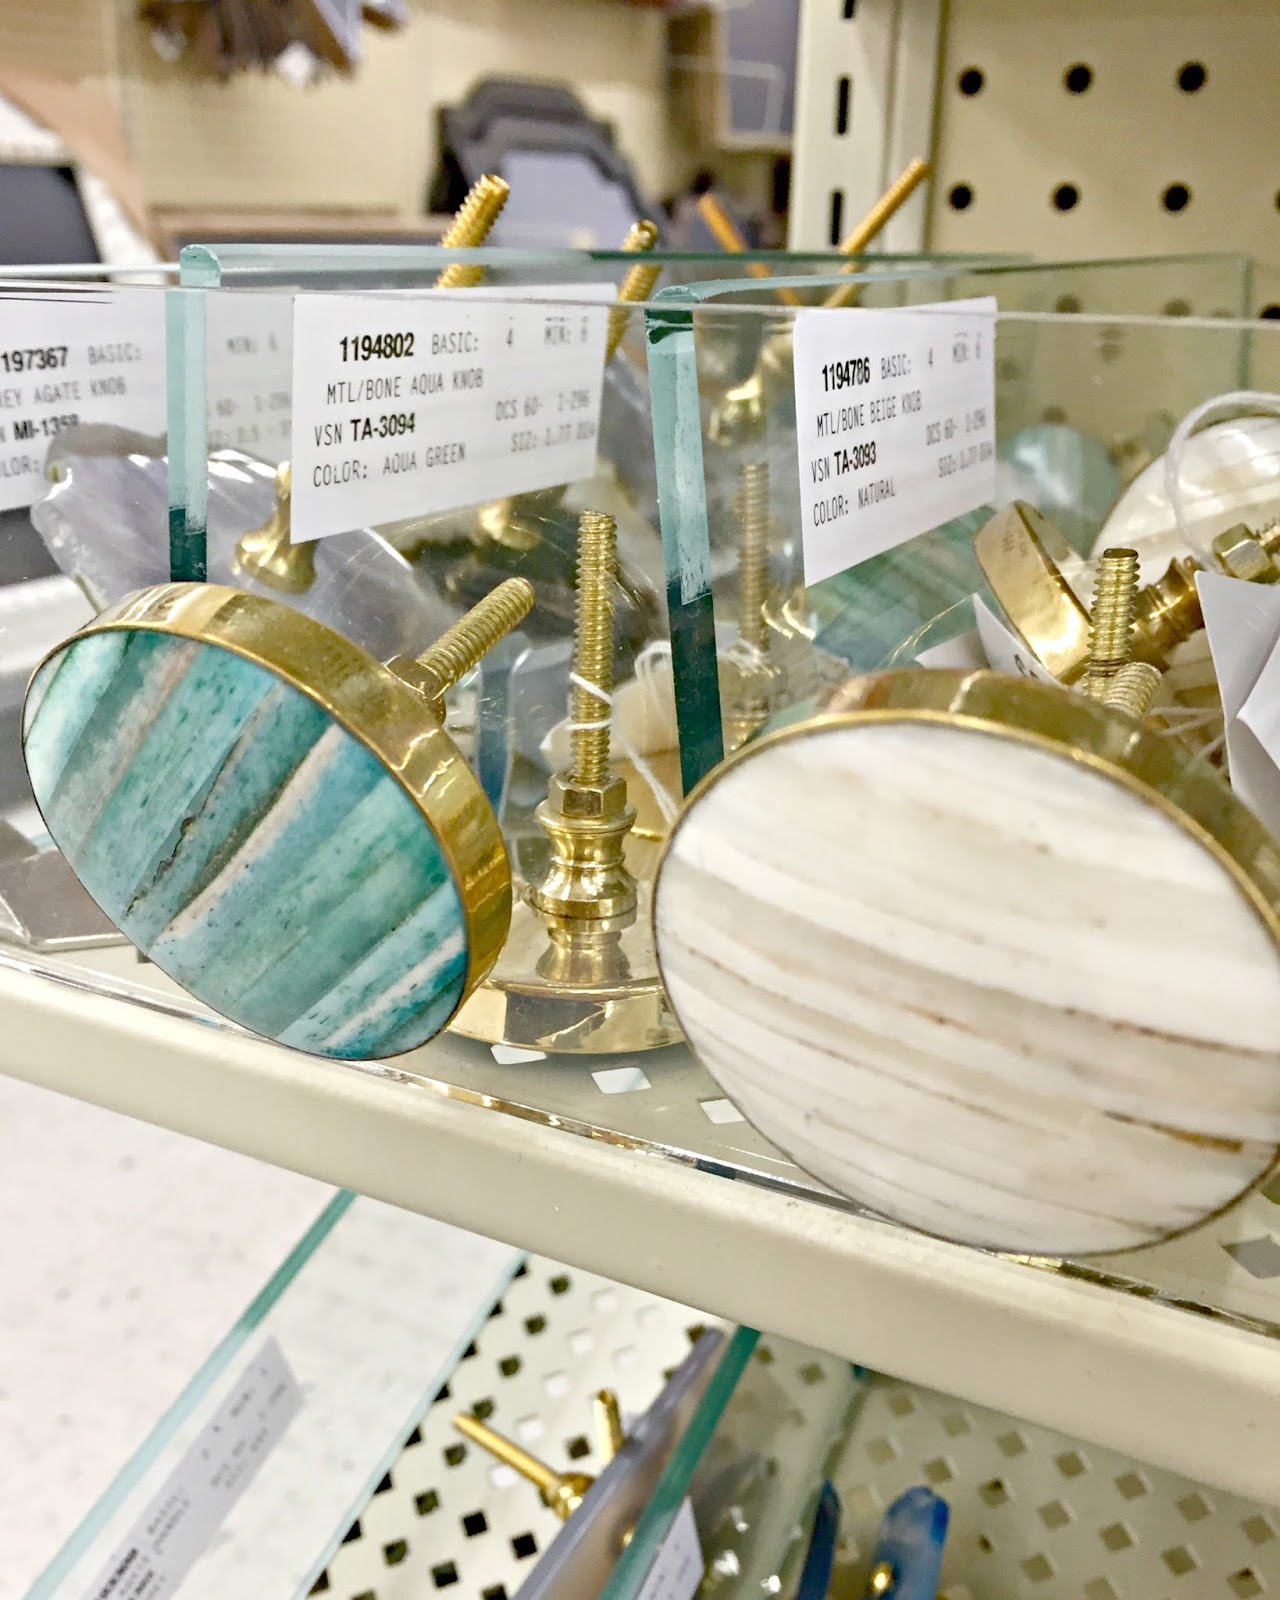 Hobby Lobby Cabinet Knobs : hobby, lobby, cabinet, knobs, Place, Beautiful, Knobs, Pulls, Thrifty, Decor, Chick